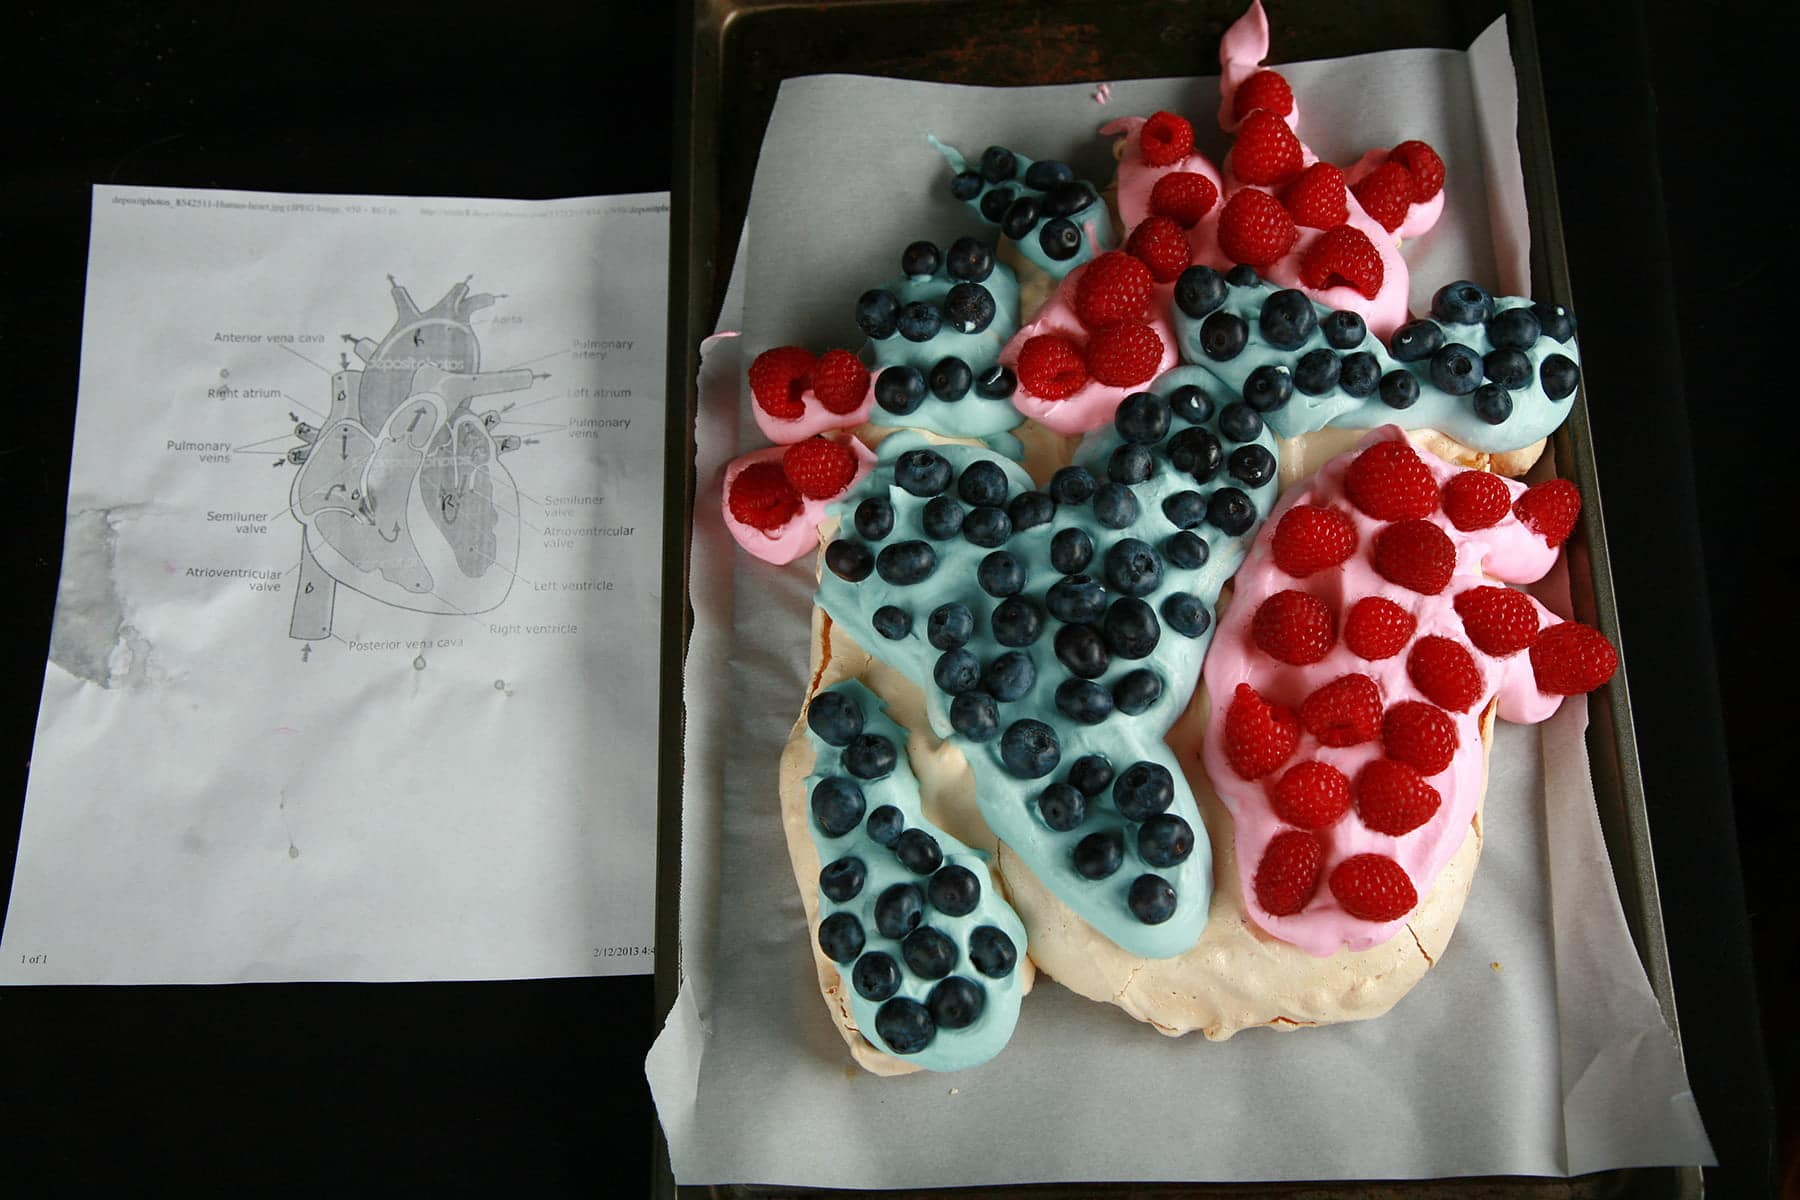 A pavlova made to look like an actual heart - with blue and red whipped cream, raspberries, and blueberries. It is shown next to a paper diagram of a human heart.